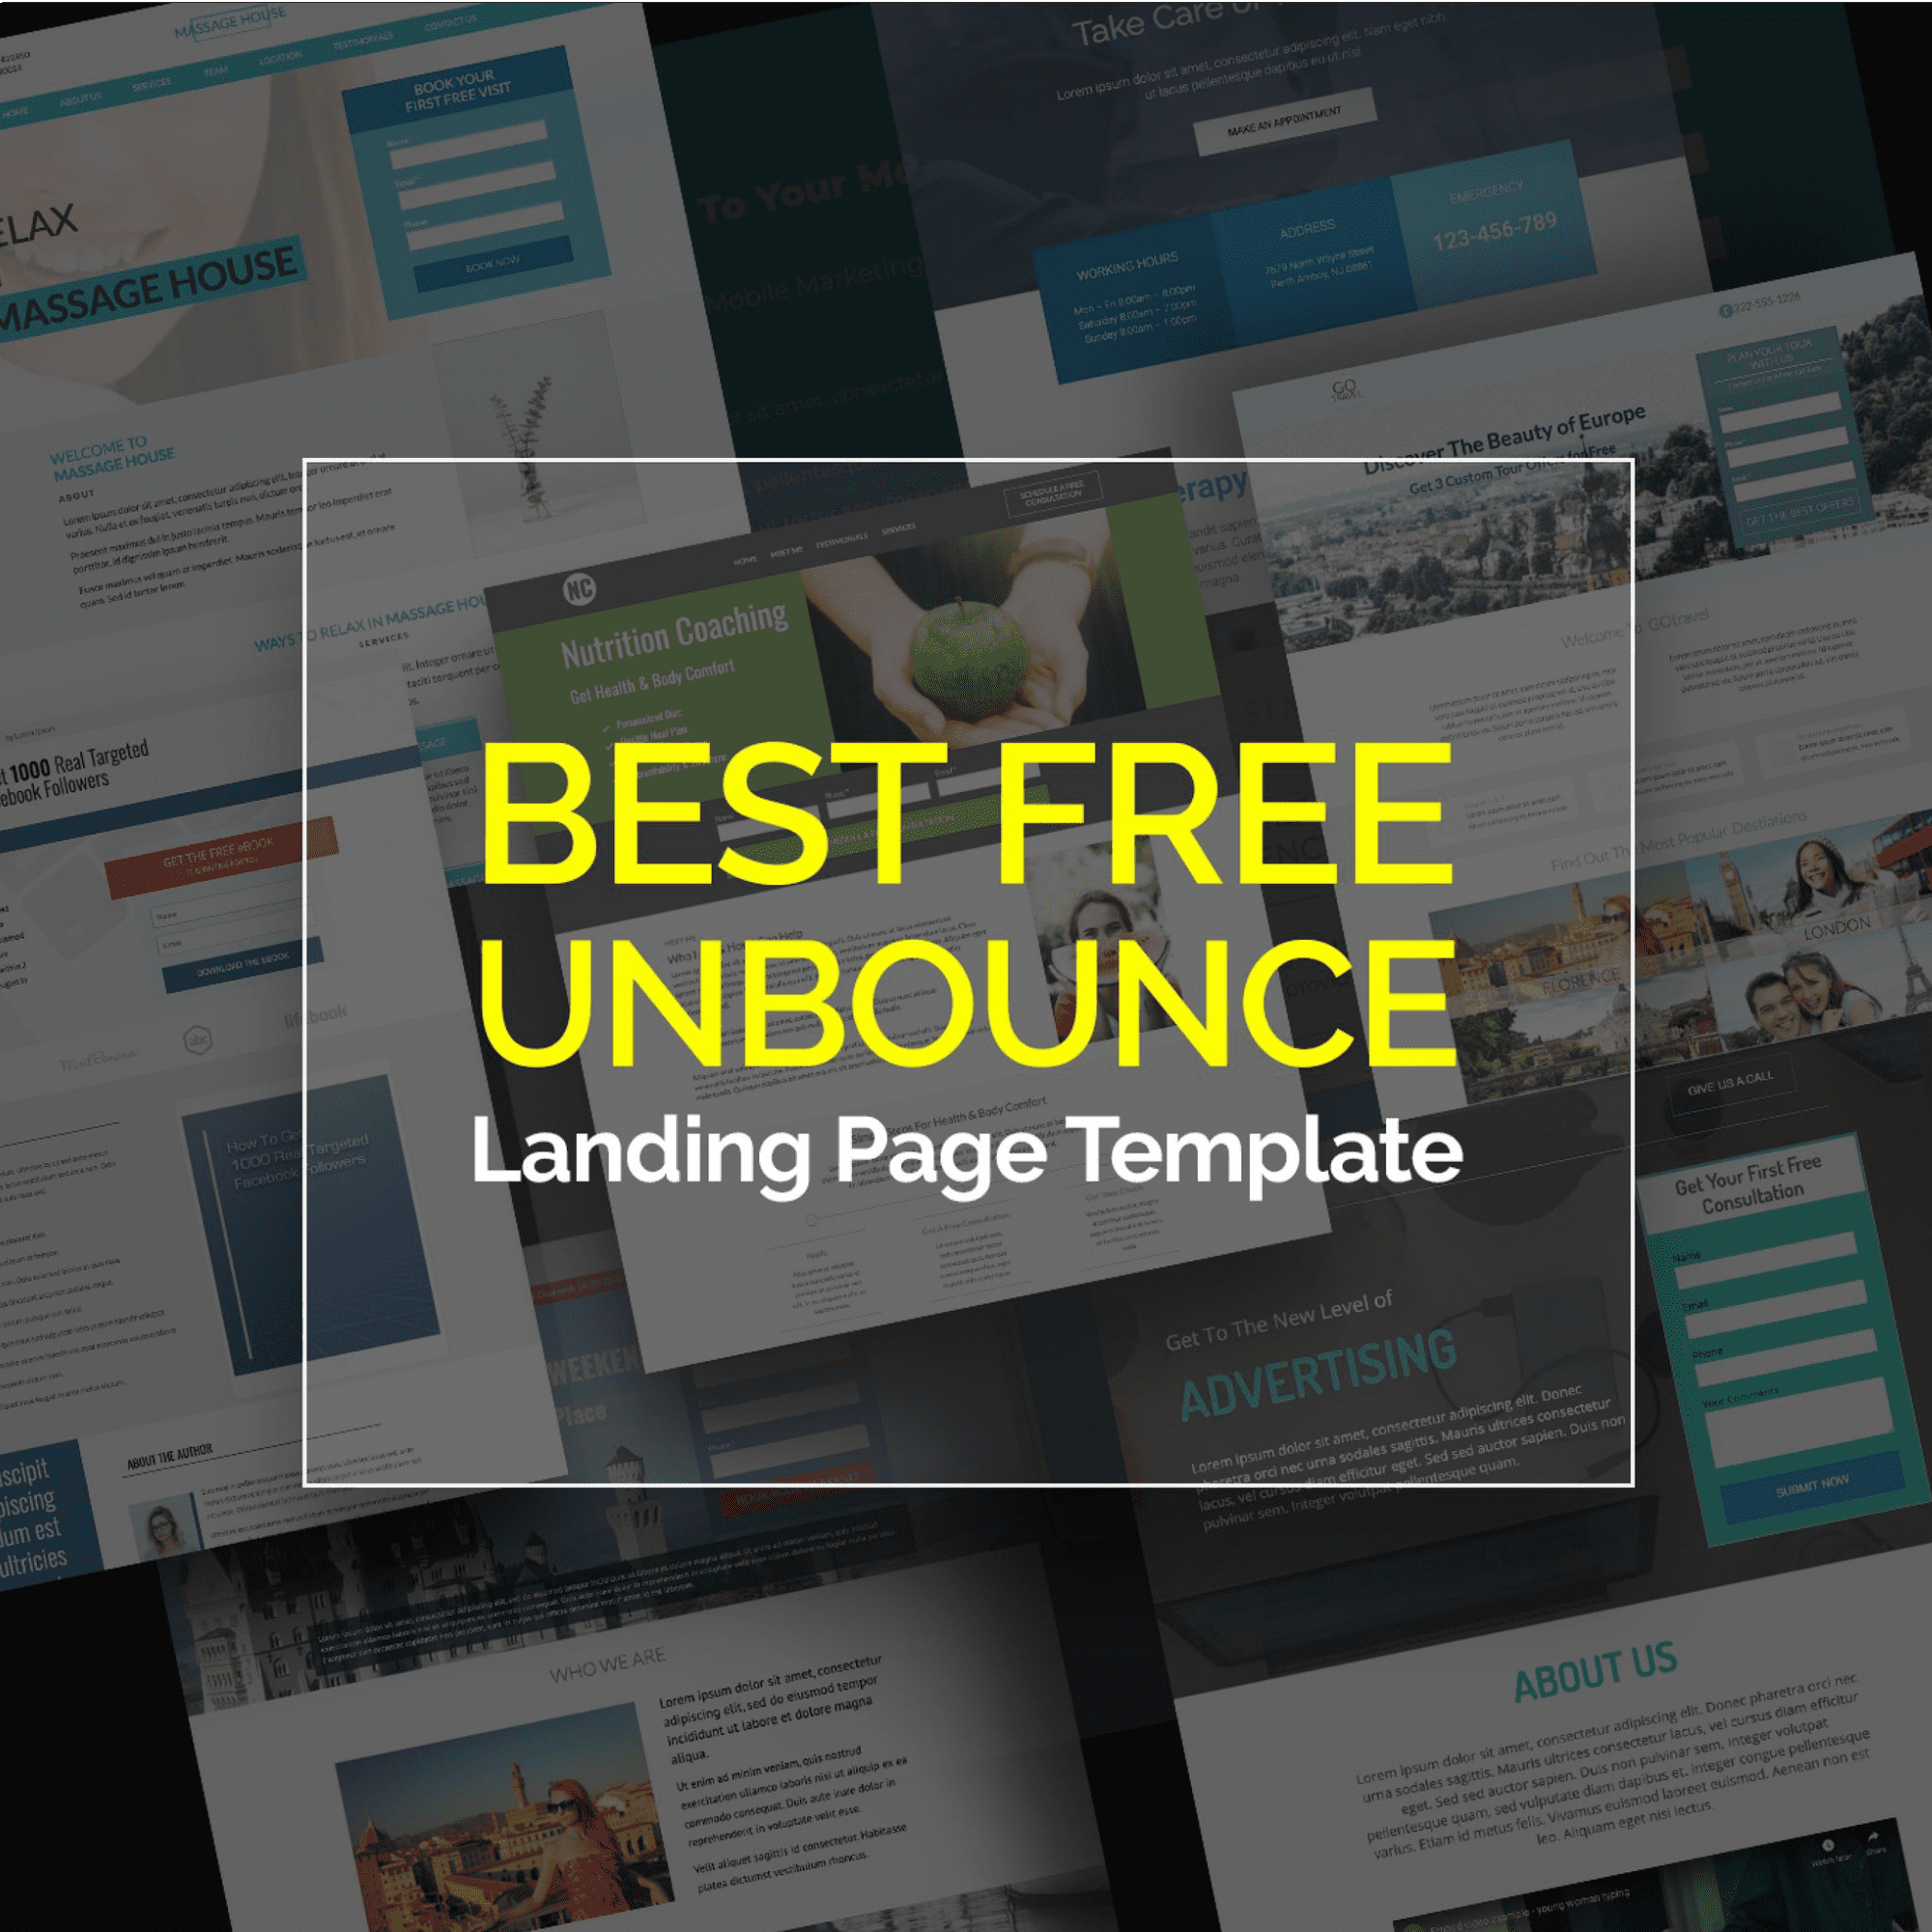 Best Free Unbounce Landing Page Template.